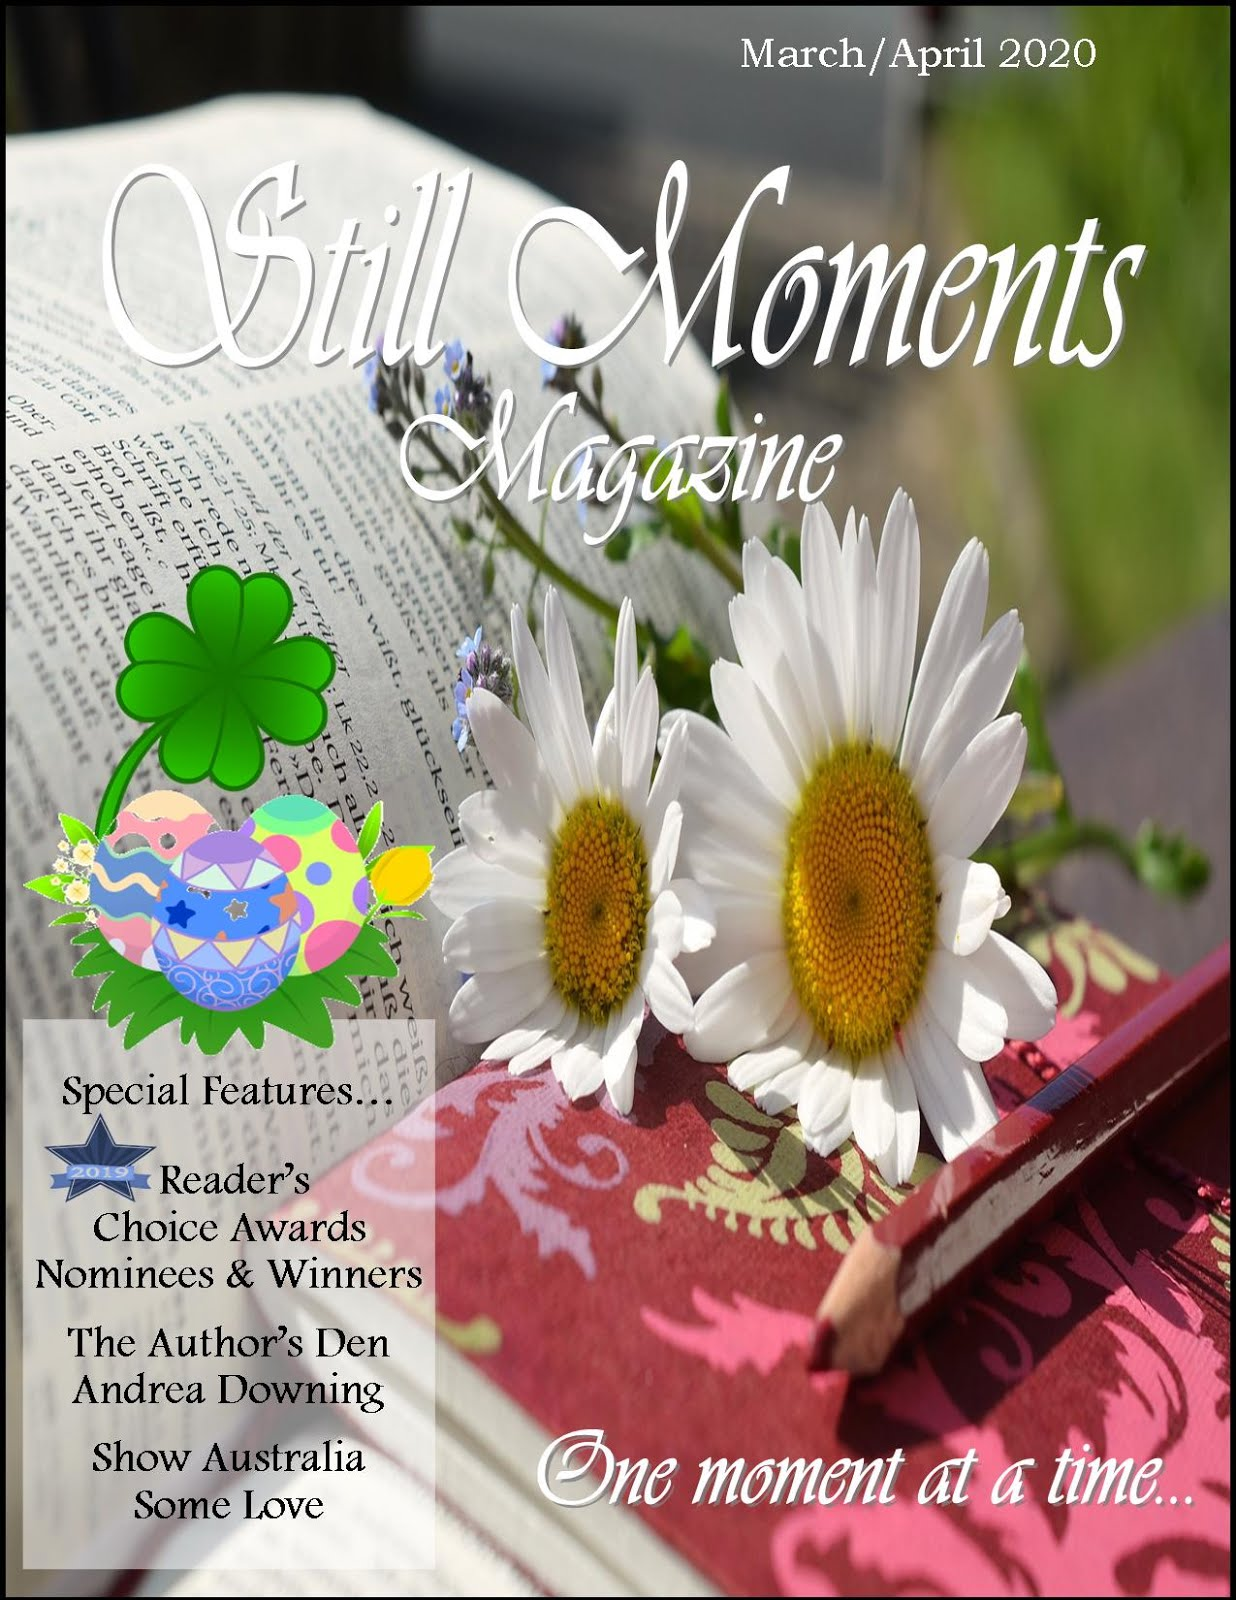 Still Moments Magazine March/April 2020